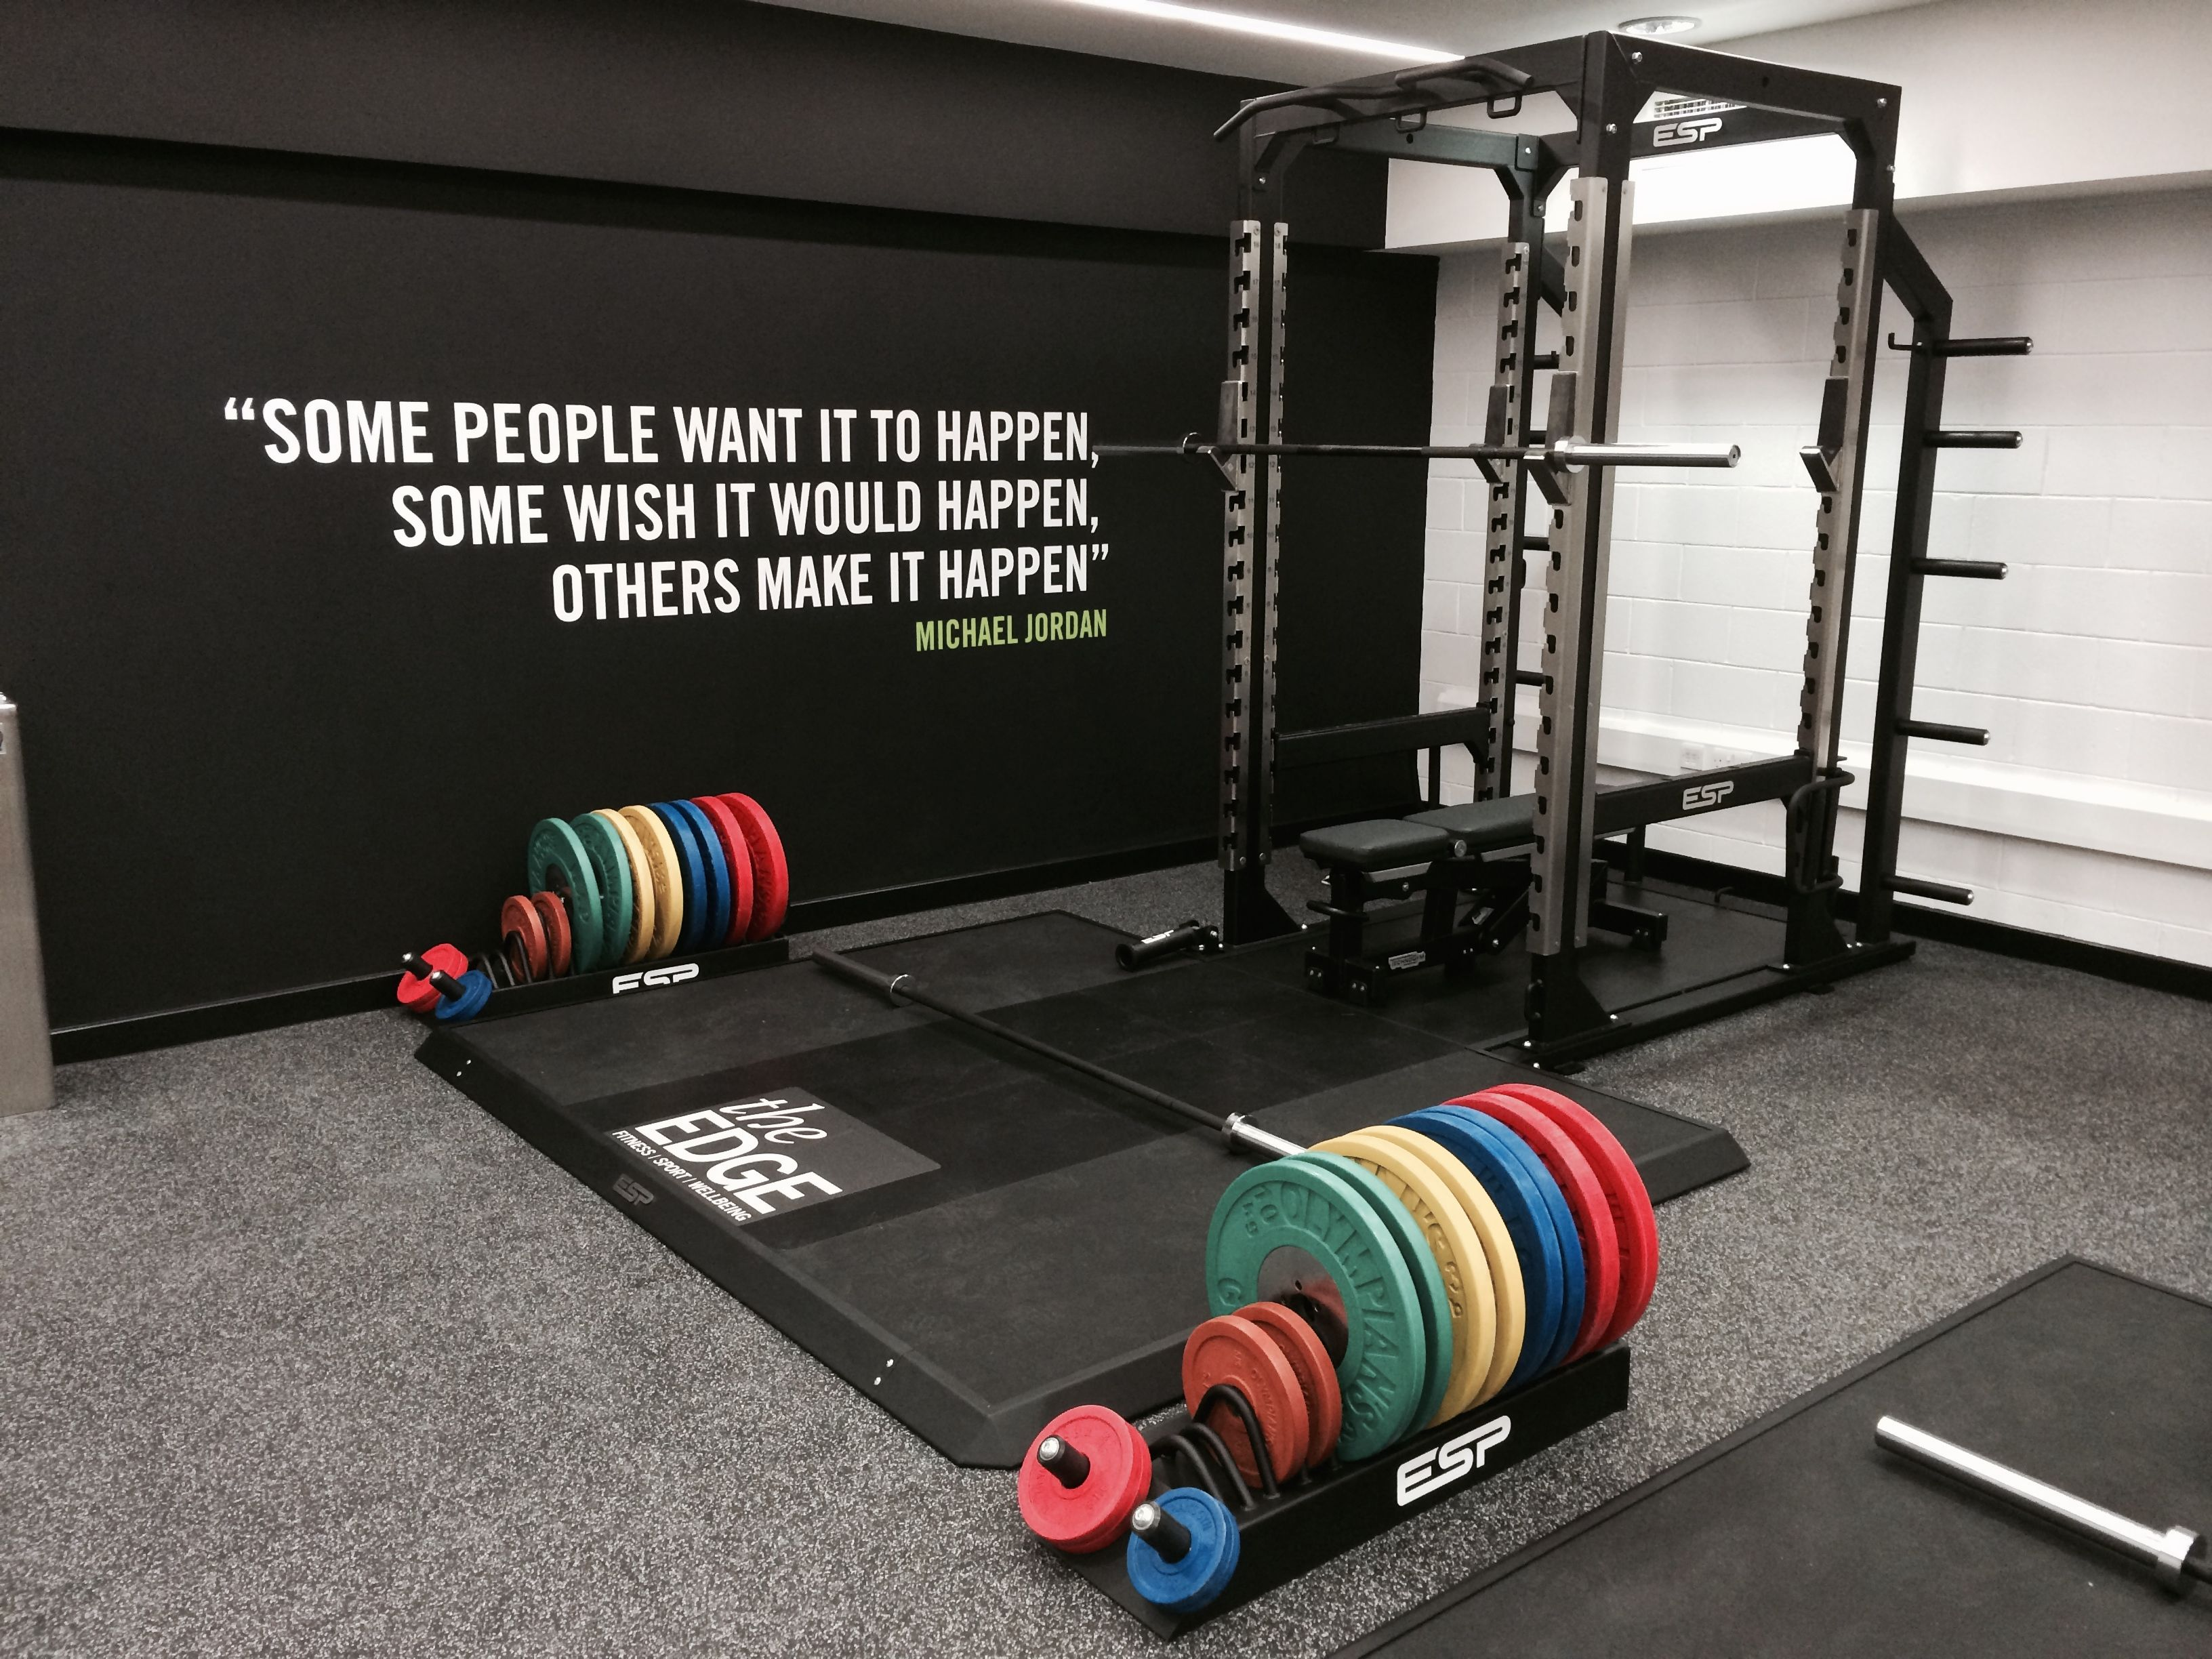 Garage Gym Reviews Diy Platform 23 Best Home Gym Room Ideas For Healthy Lifestyle H O M E